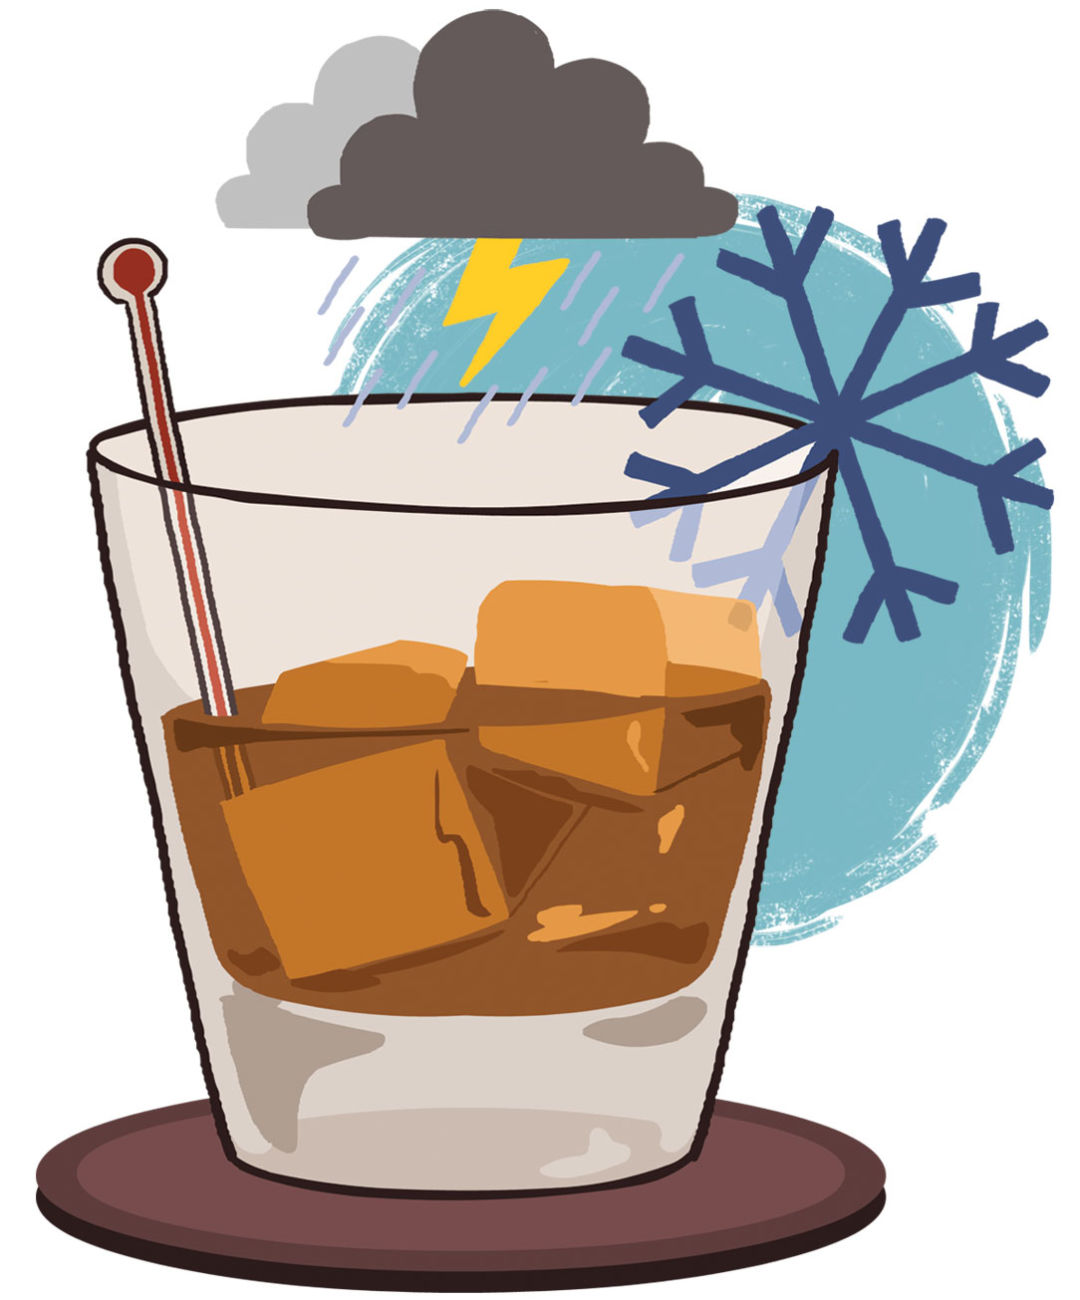 1215 reasons to love winter illo cocktail g4lh5y